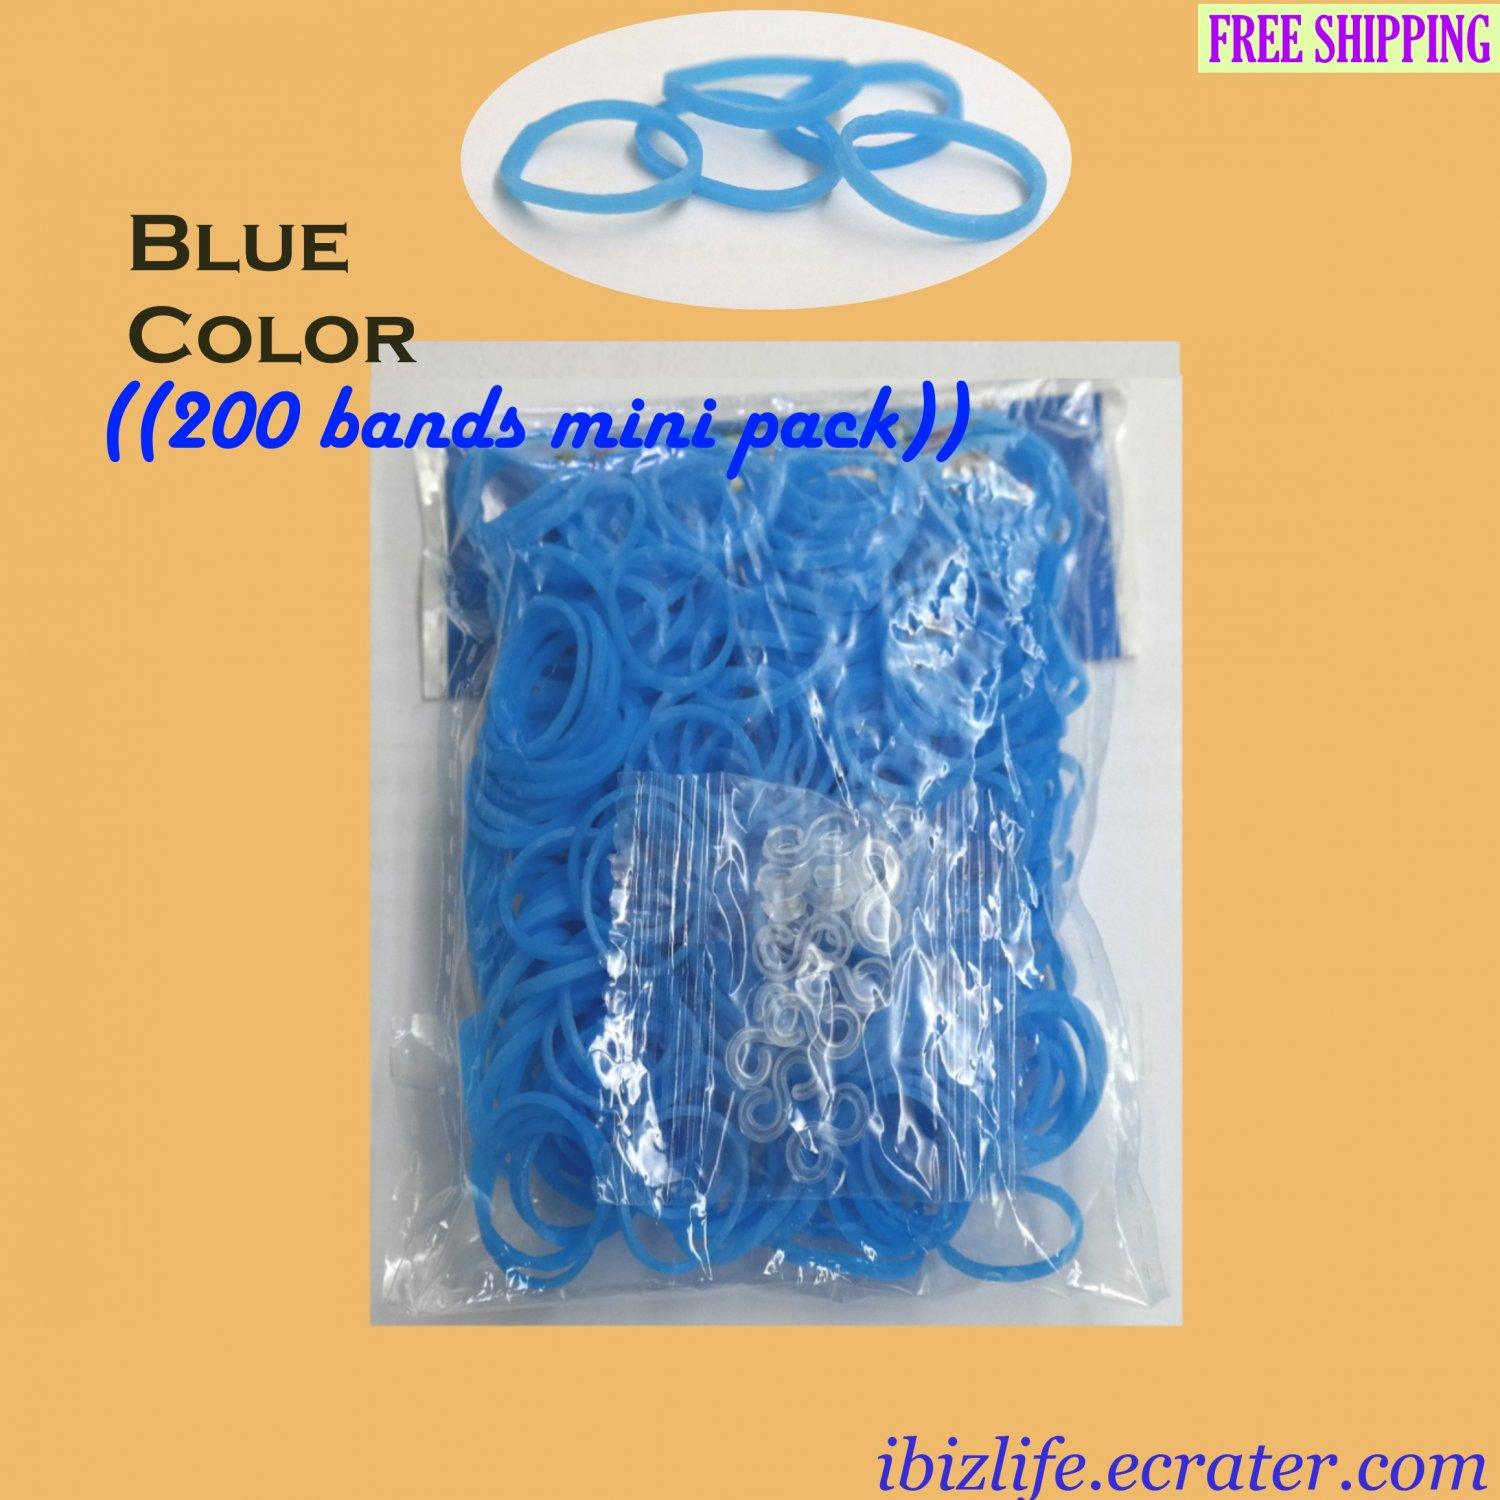 RAINBOW LOOM RUBBER BAND REFILL with 200 bands (Blue color) & 24 Clips (RL39)